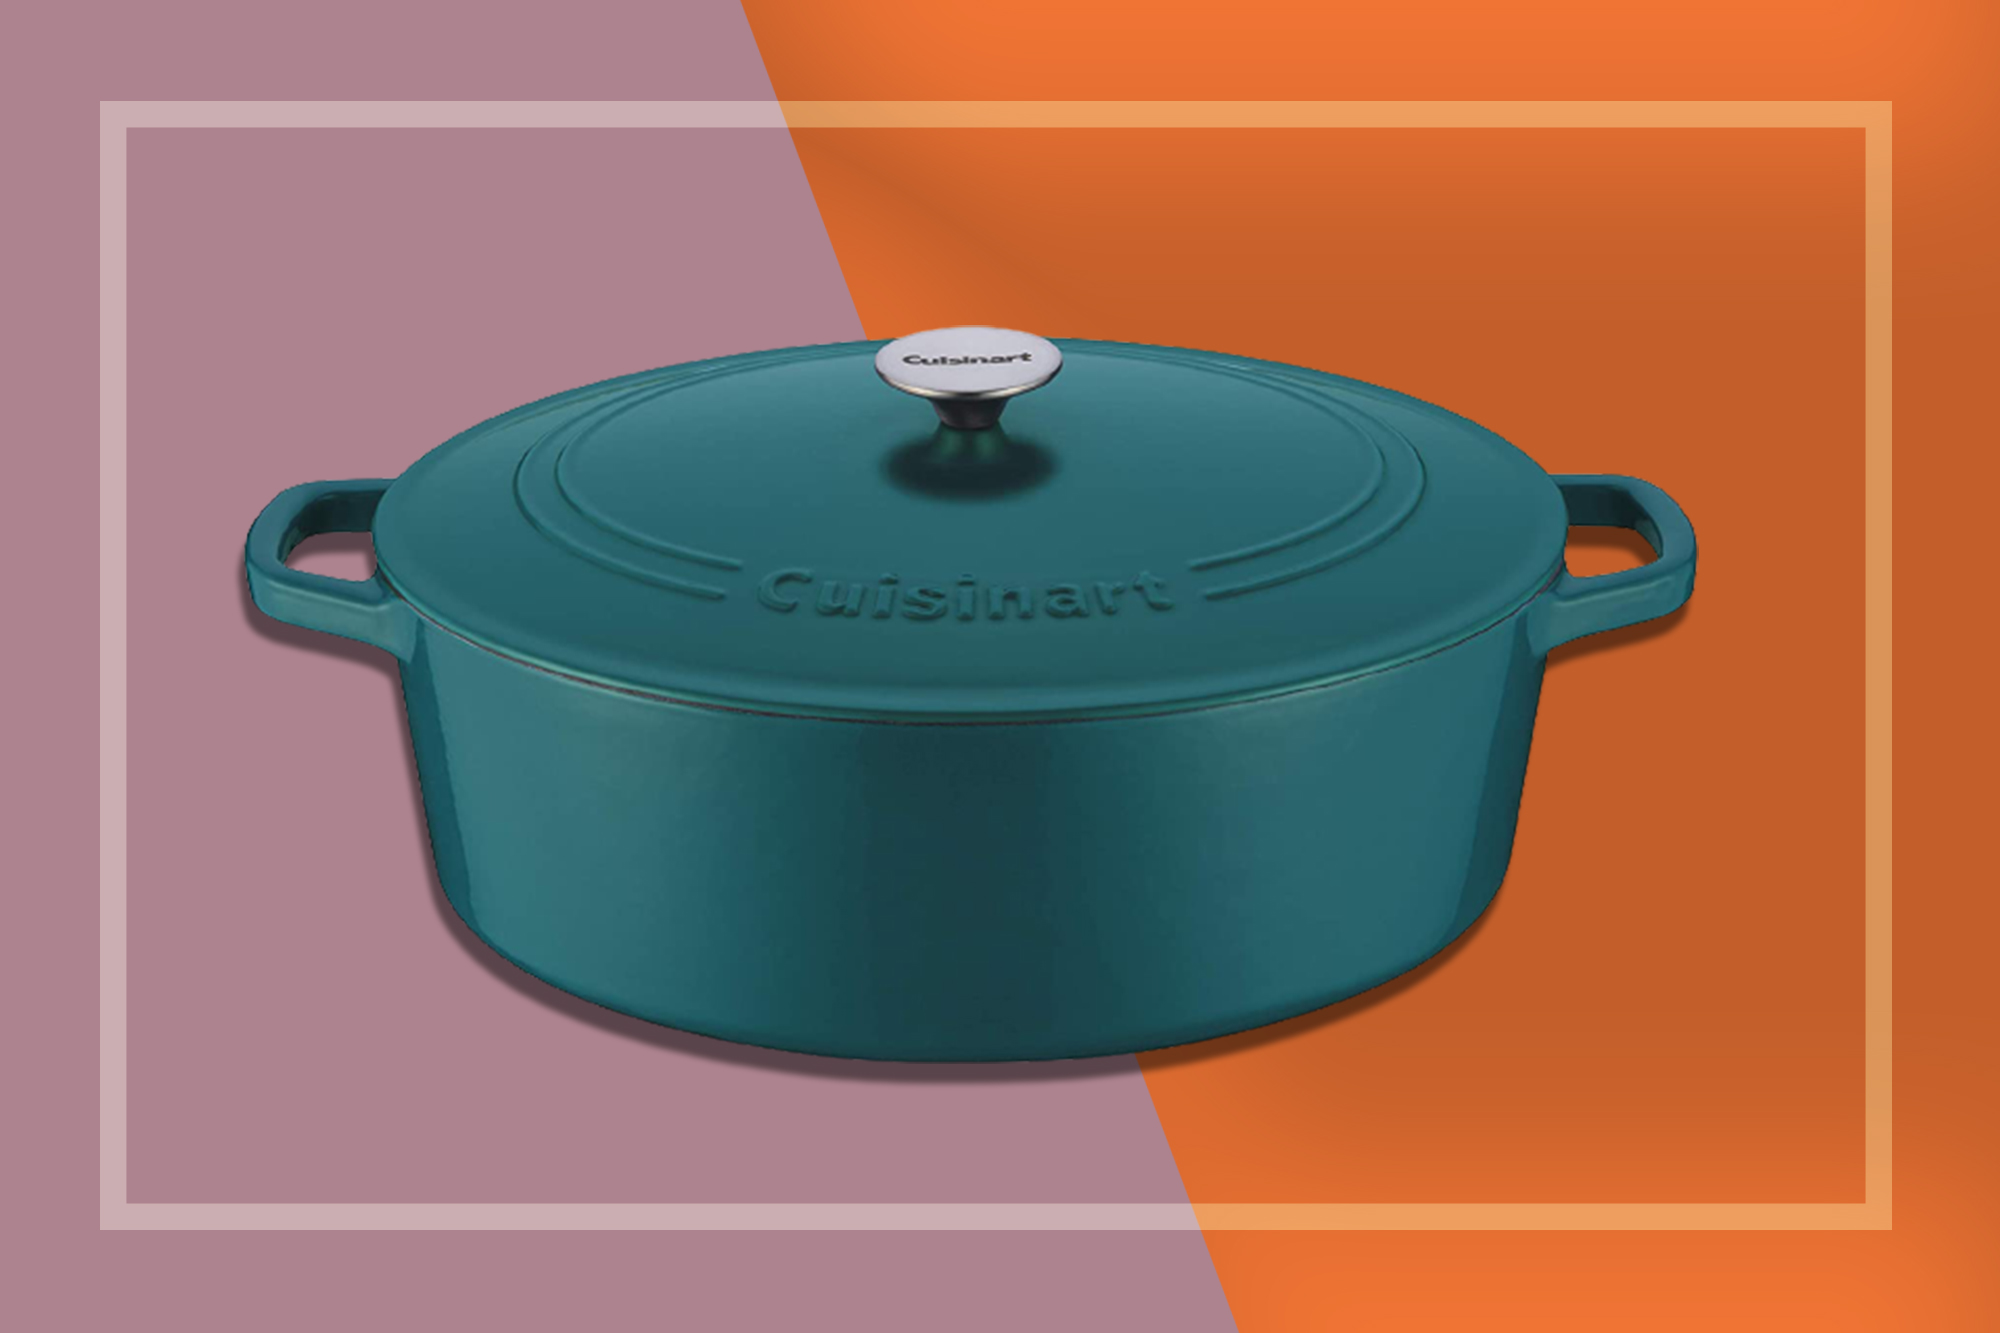 cuisinart dutch oven